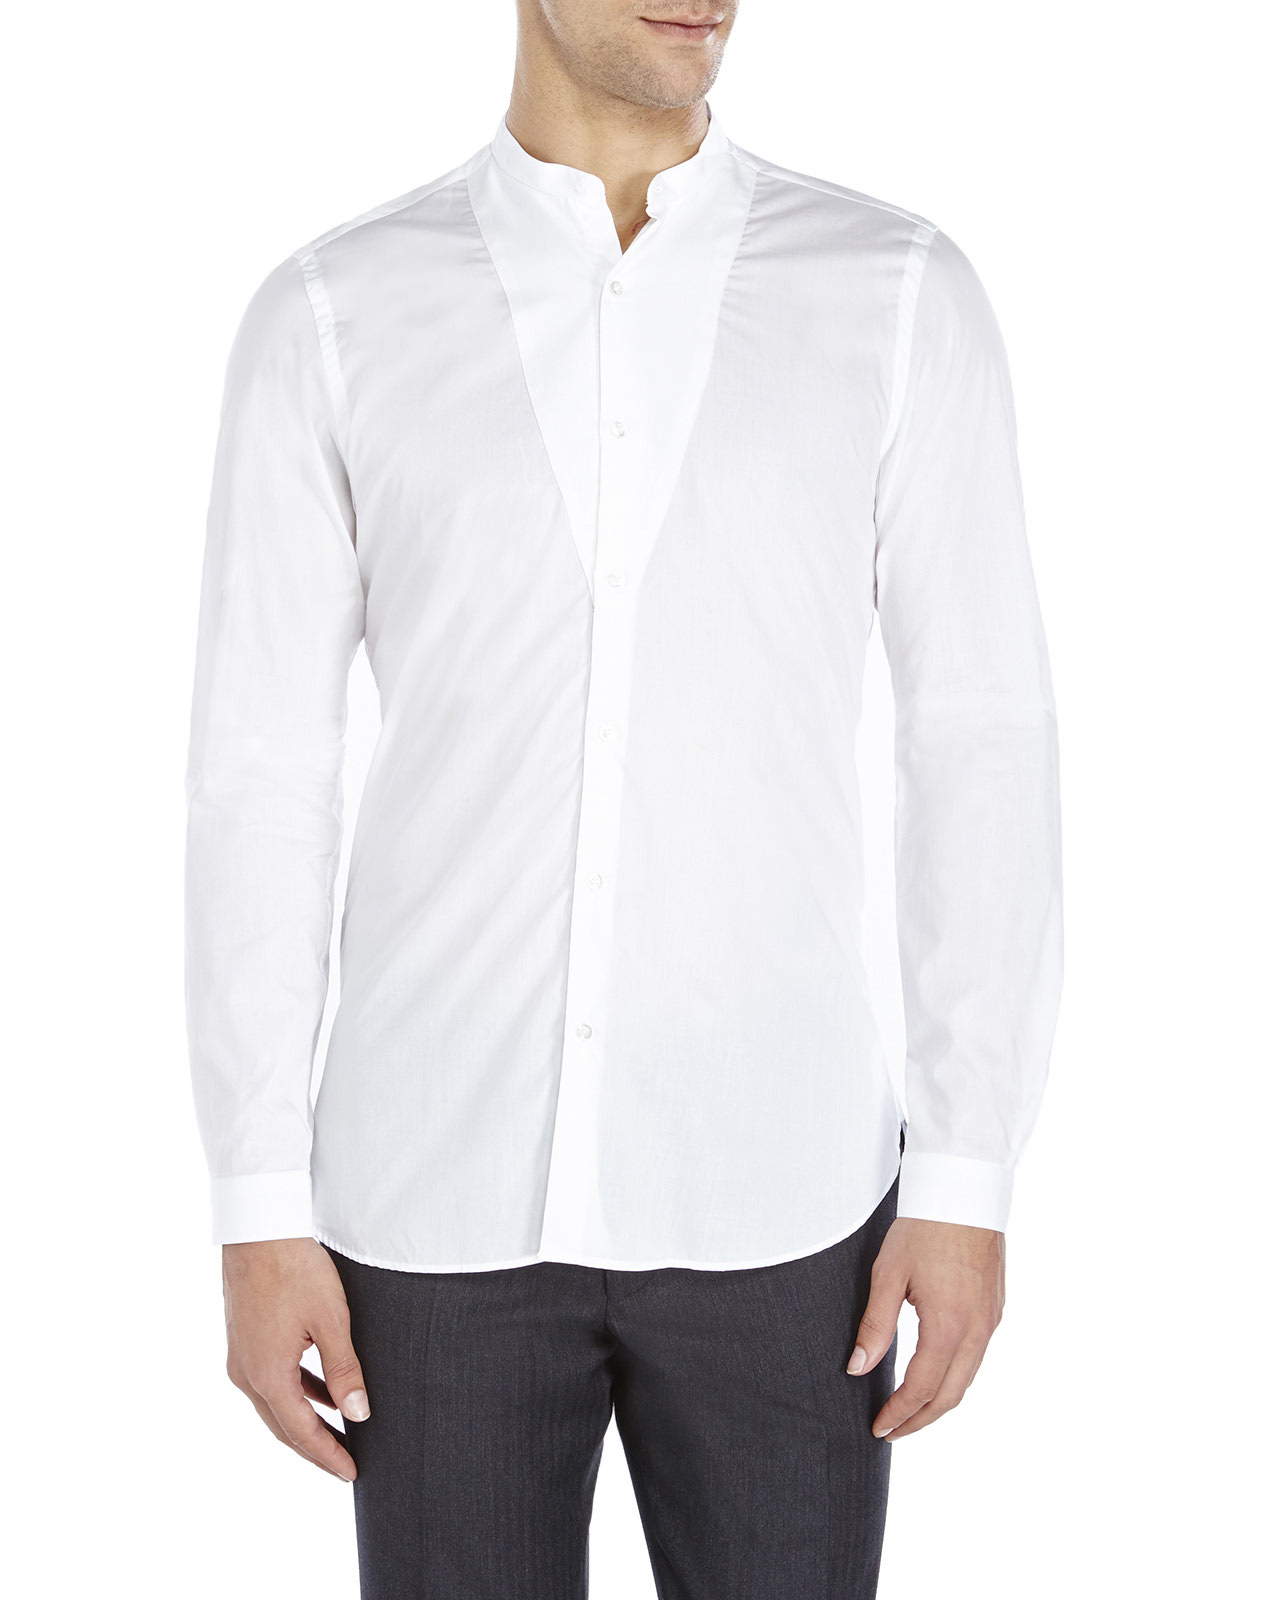 107f6136d4 The Kooples White Fitted Bib Sport Shirt in White for Men - Lyst